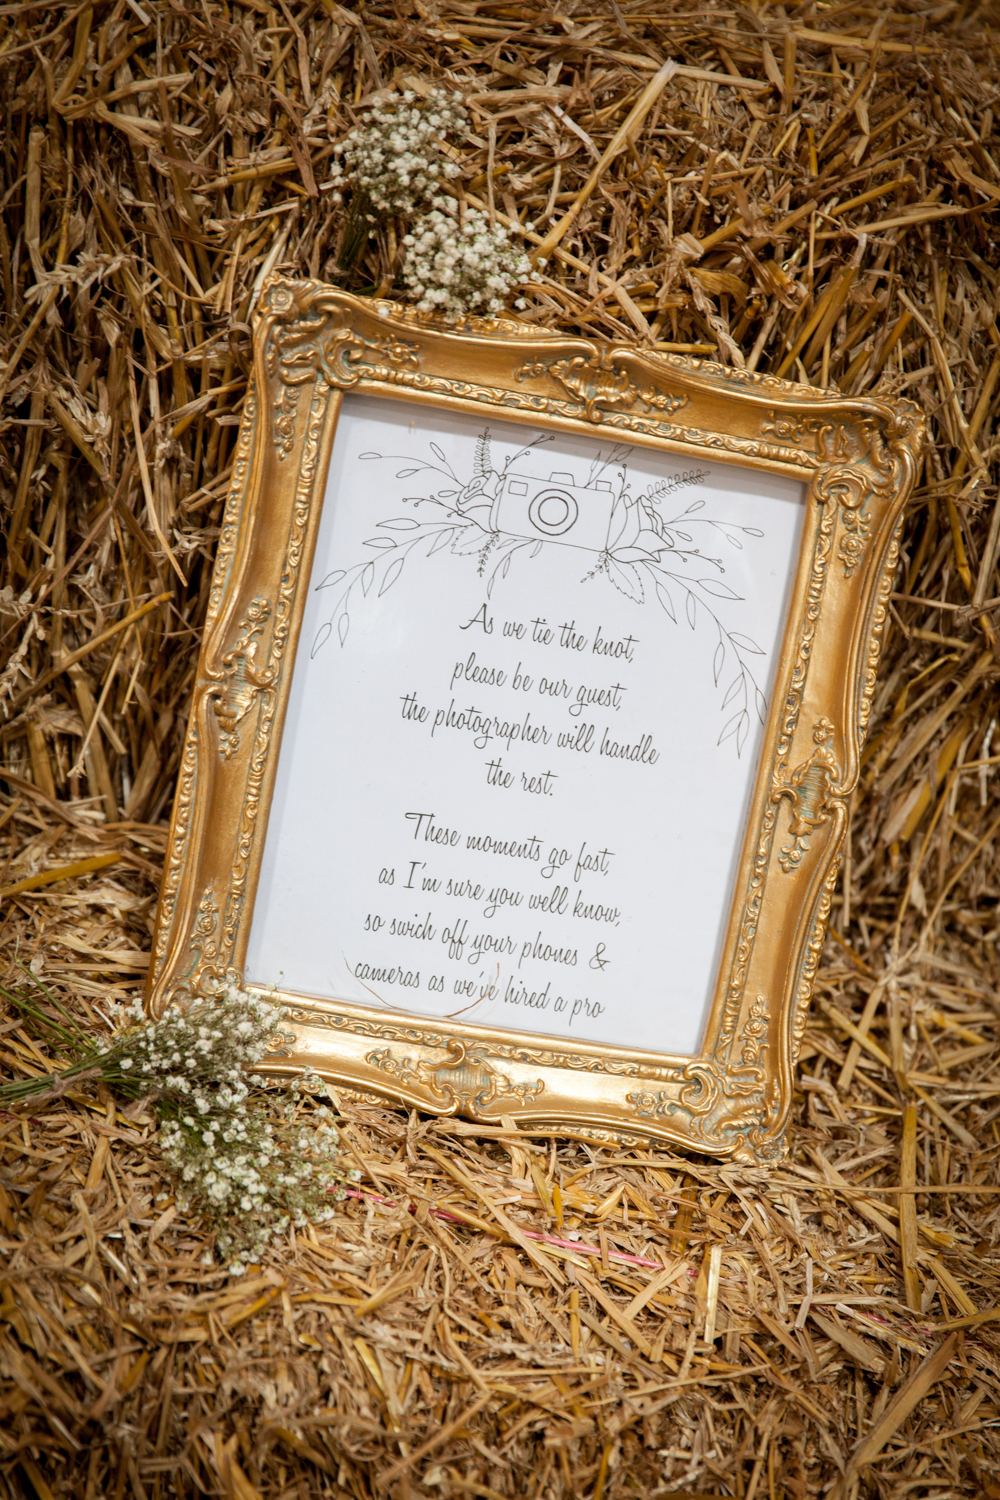 WEDDING_PICTORIAL_DOXFORD_BARNS_ALNWICK_BERWICK_SEASIDE_BUNTING_FARM-0637.jpg